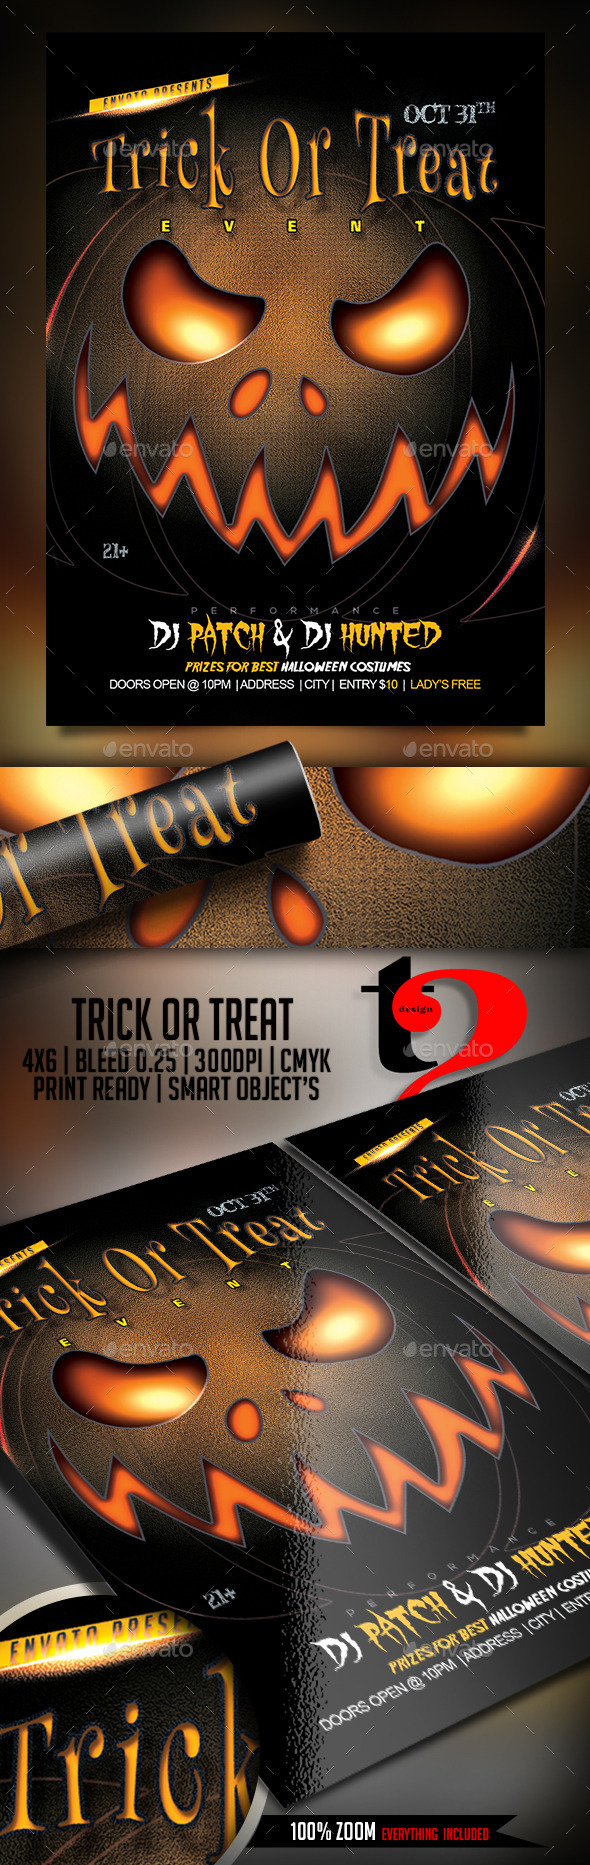 Trick Or Treat Halloween Party Flyer - Clubs & Parties Events